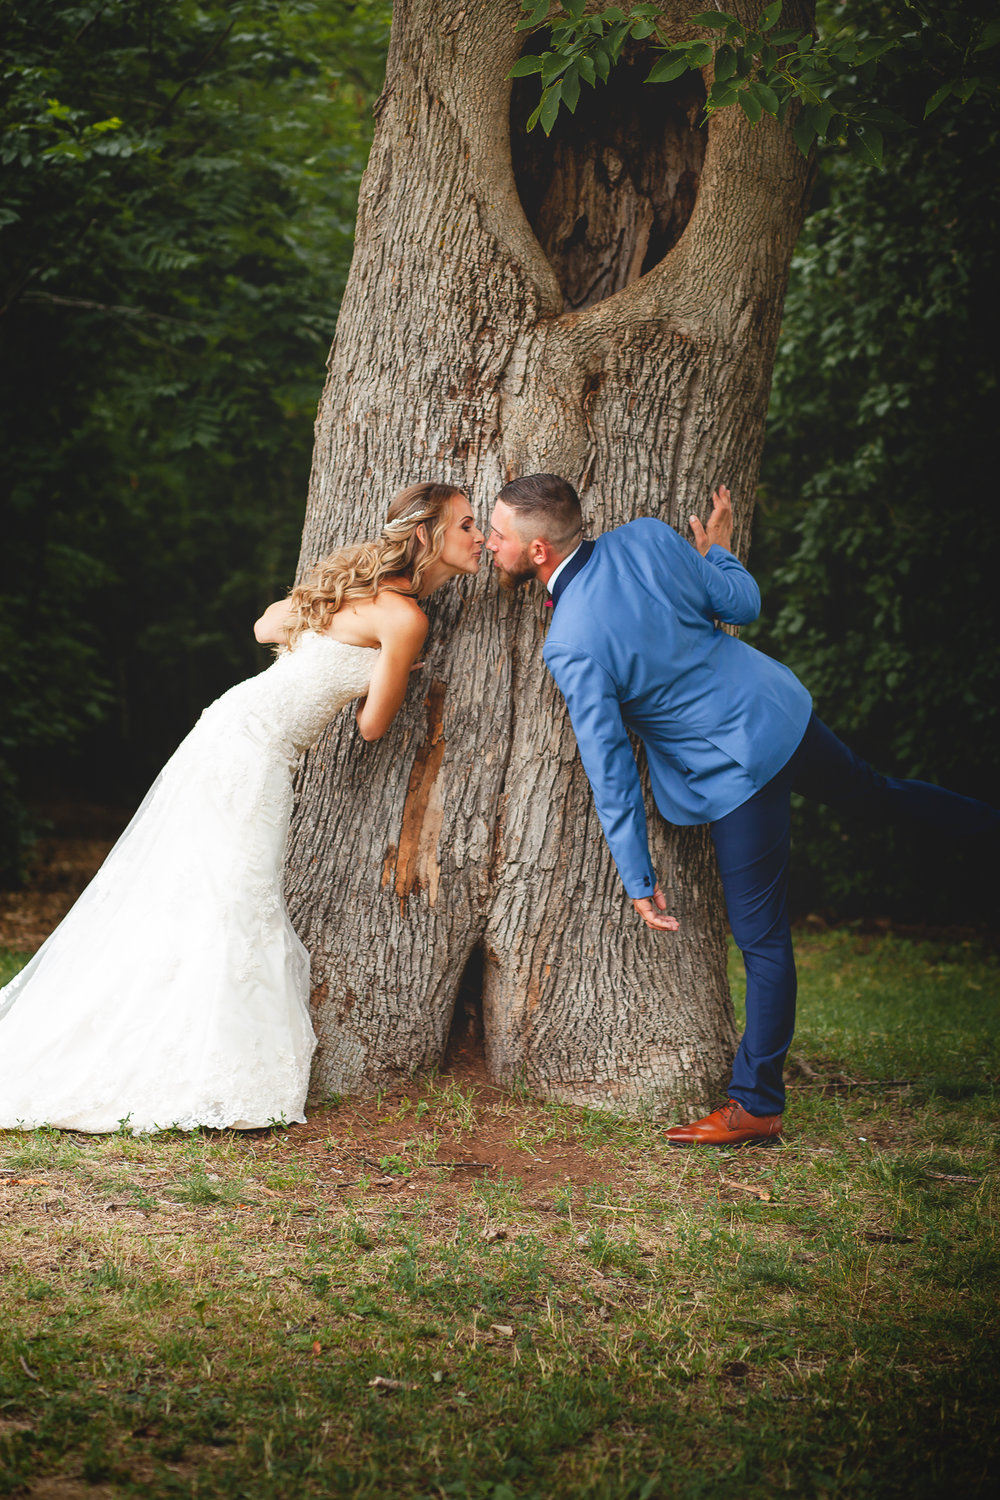 Barrie Wedding Photography- Amy D Photography- Bride and Groom Poses- Snow Valley Wedding- Bride Pose- Groom Pose- Wedding Photography Poses-22.jpg